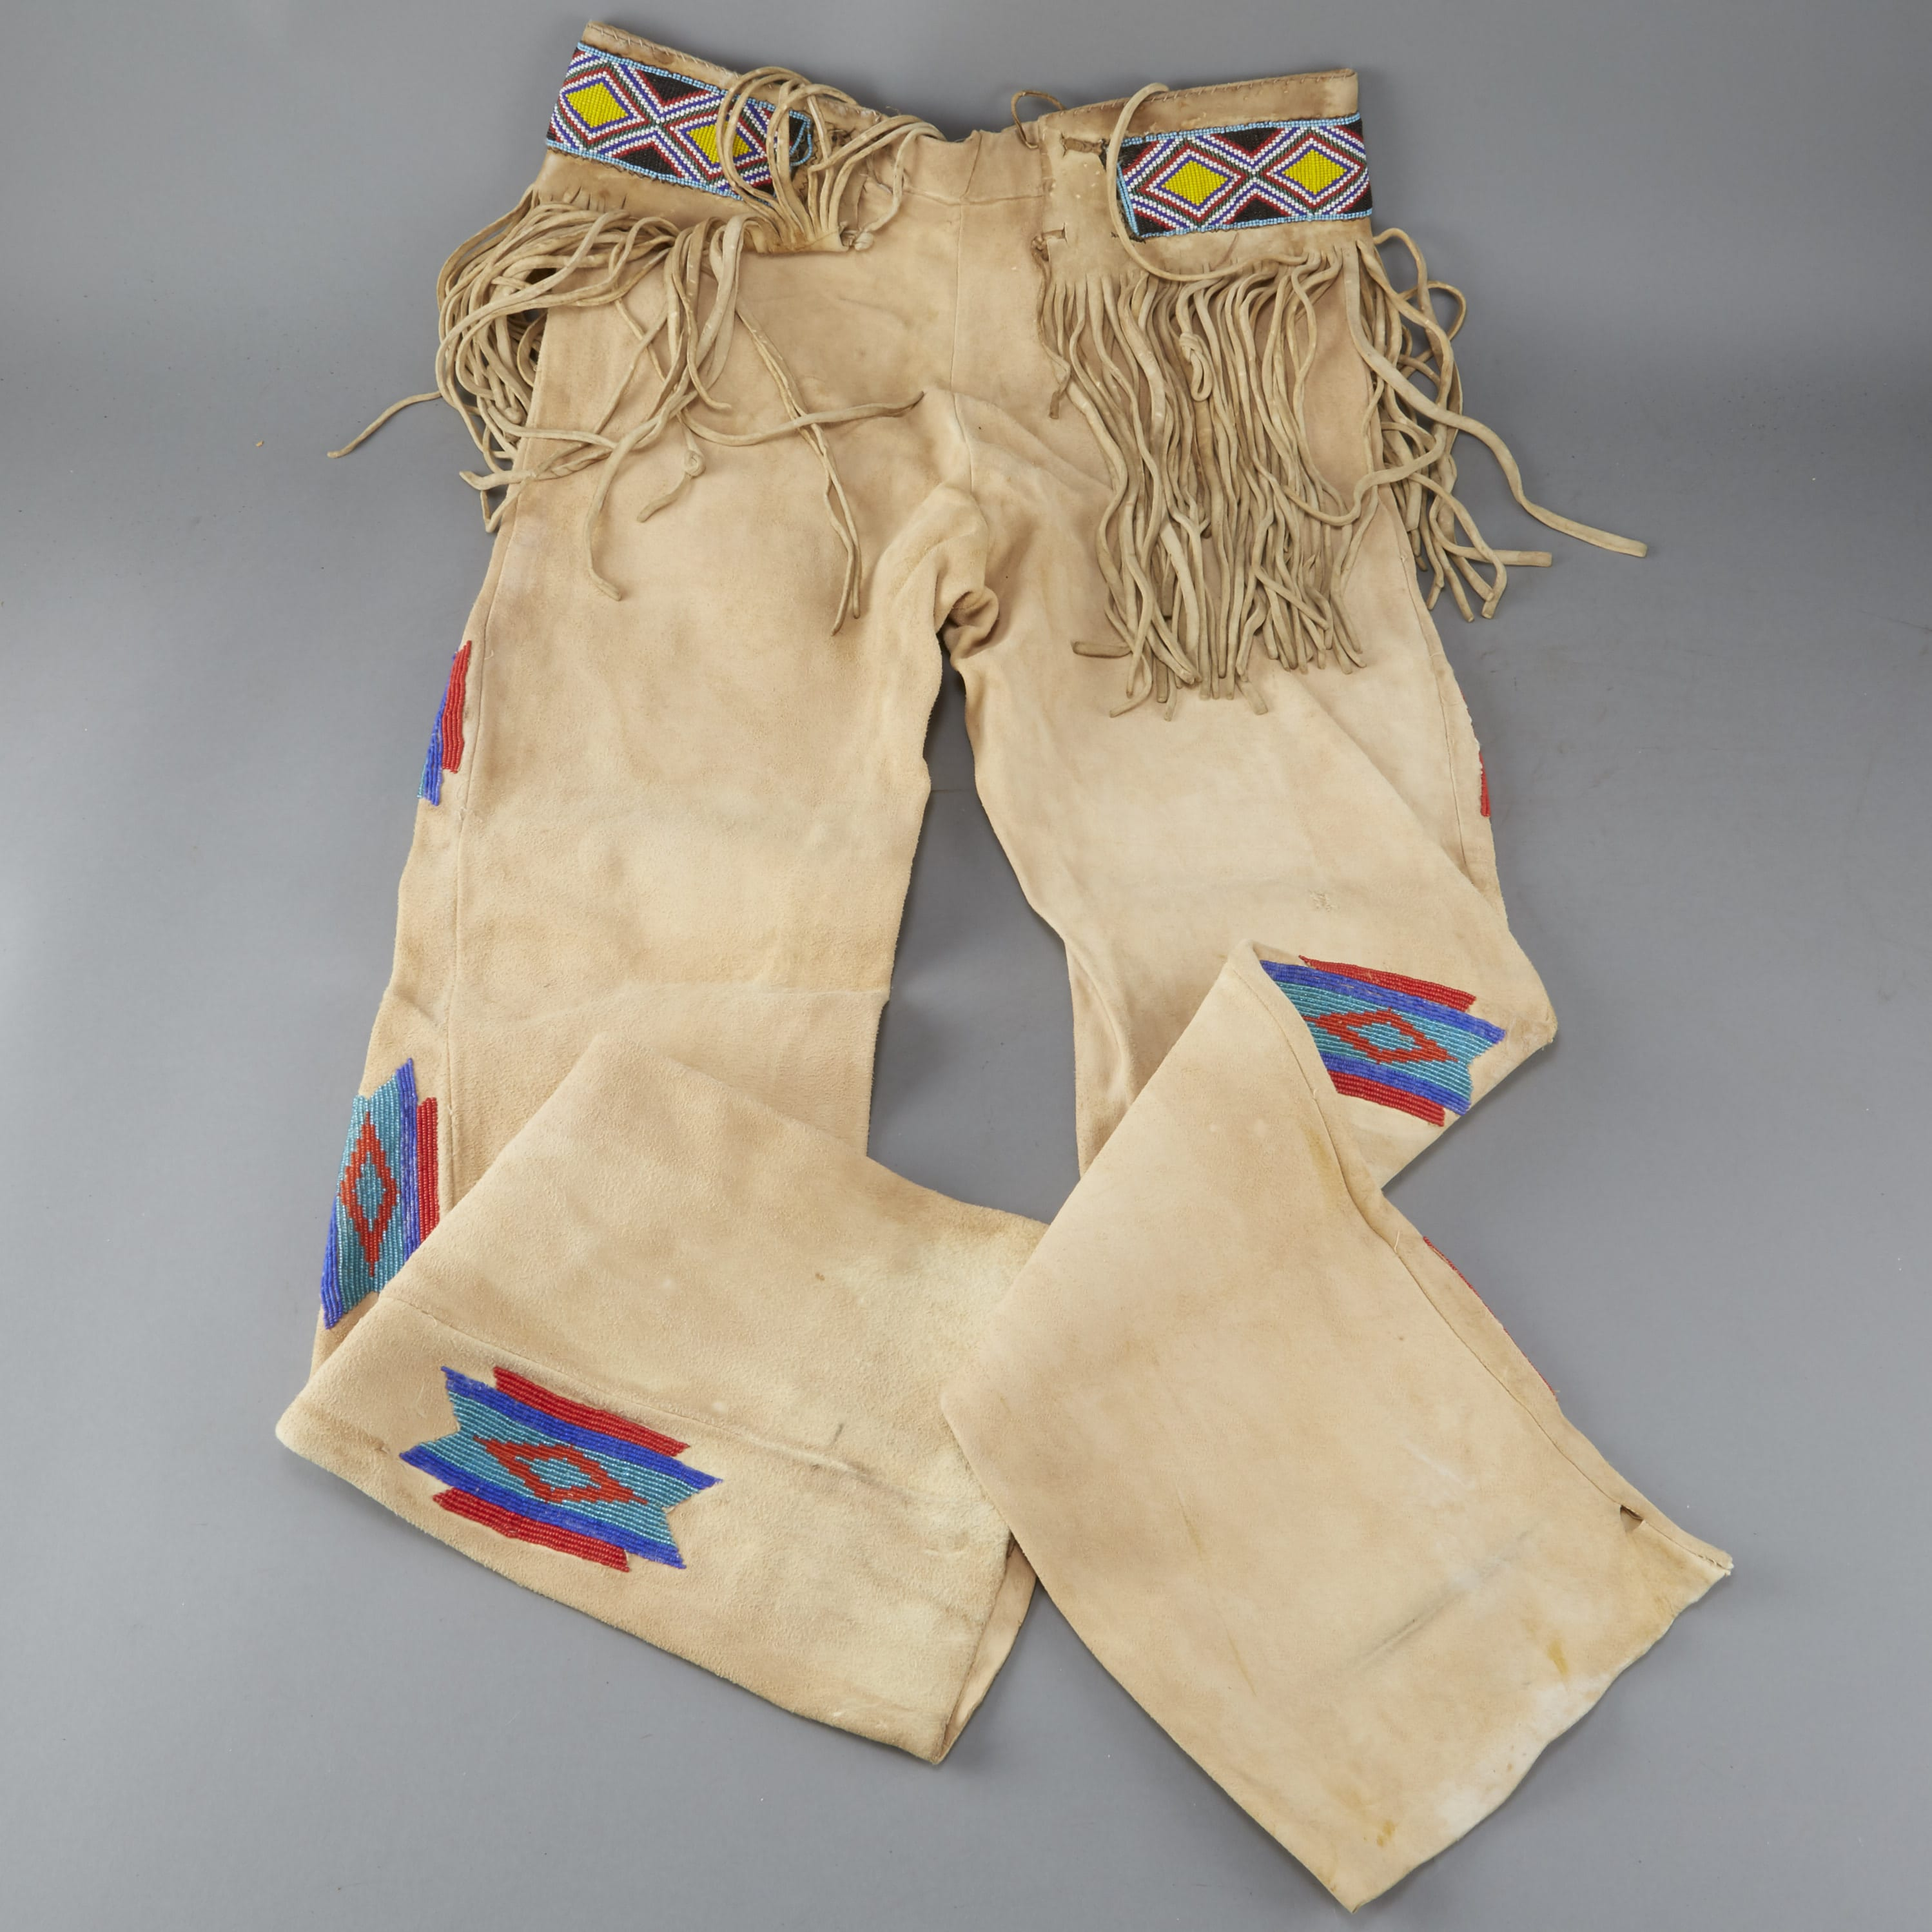 Lot 086: Native American Beaded Leather Pants